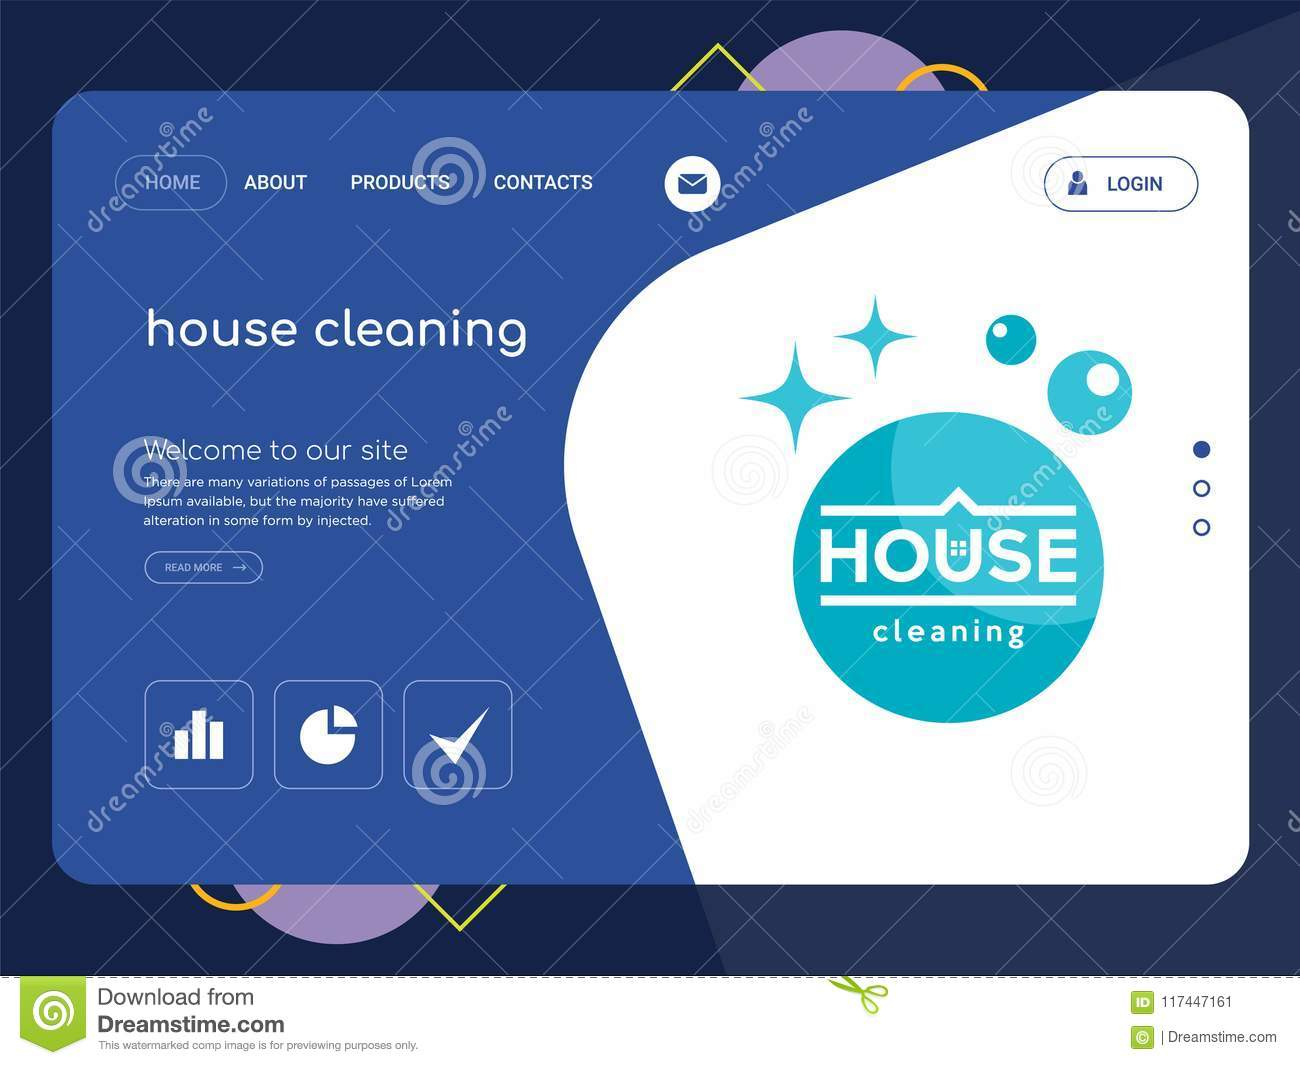 house cleaning landing page website template design